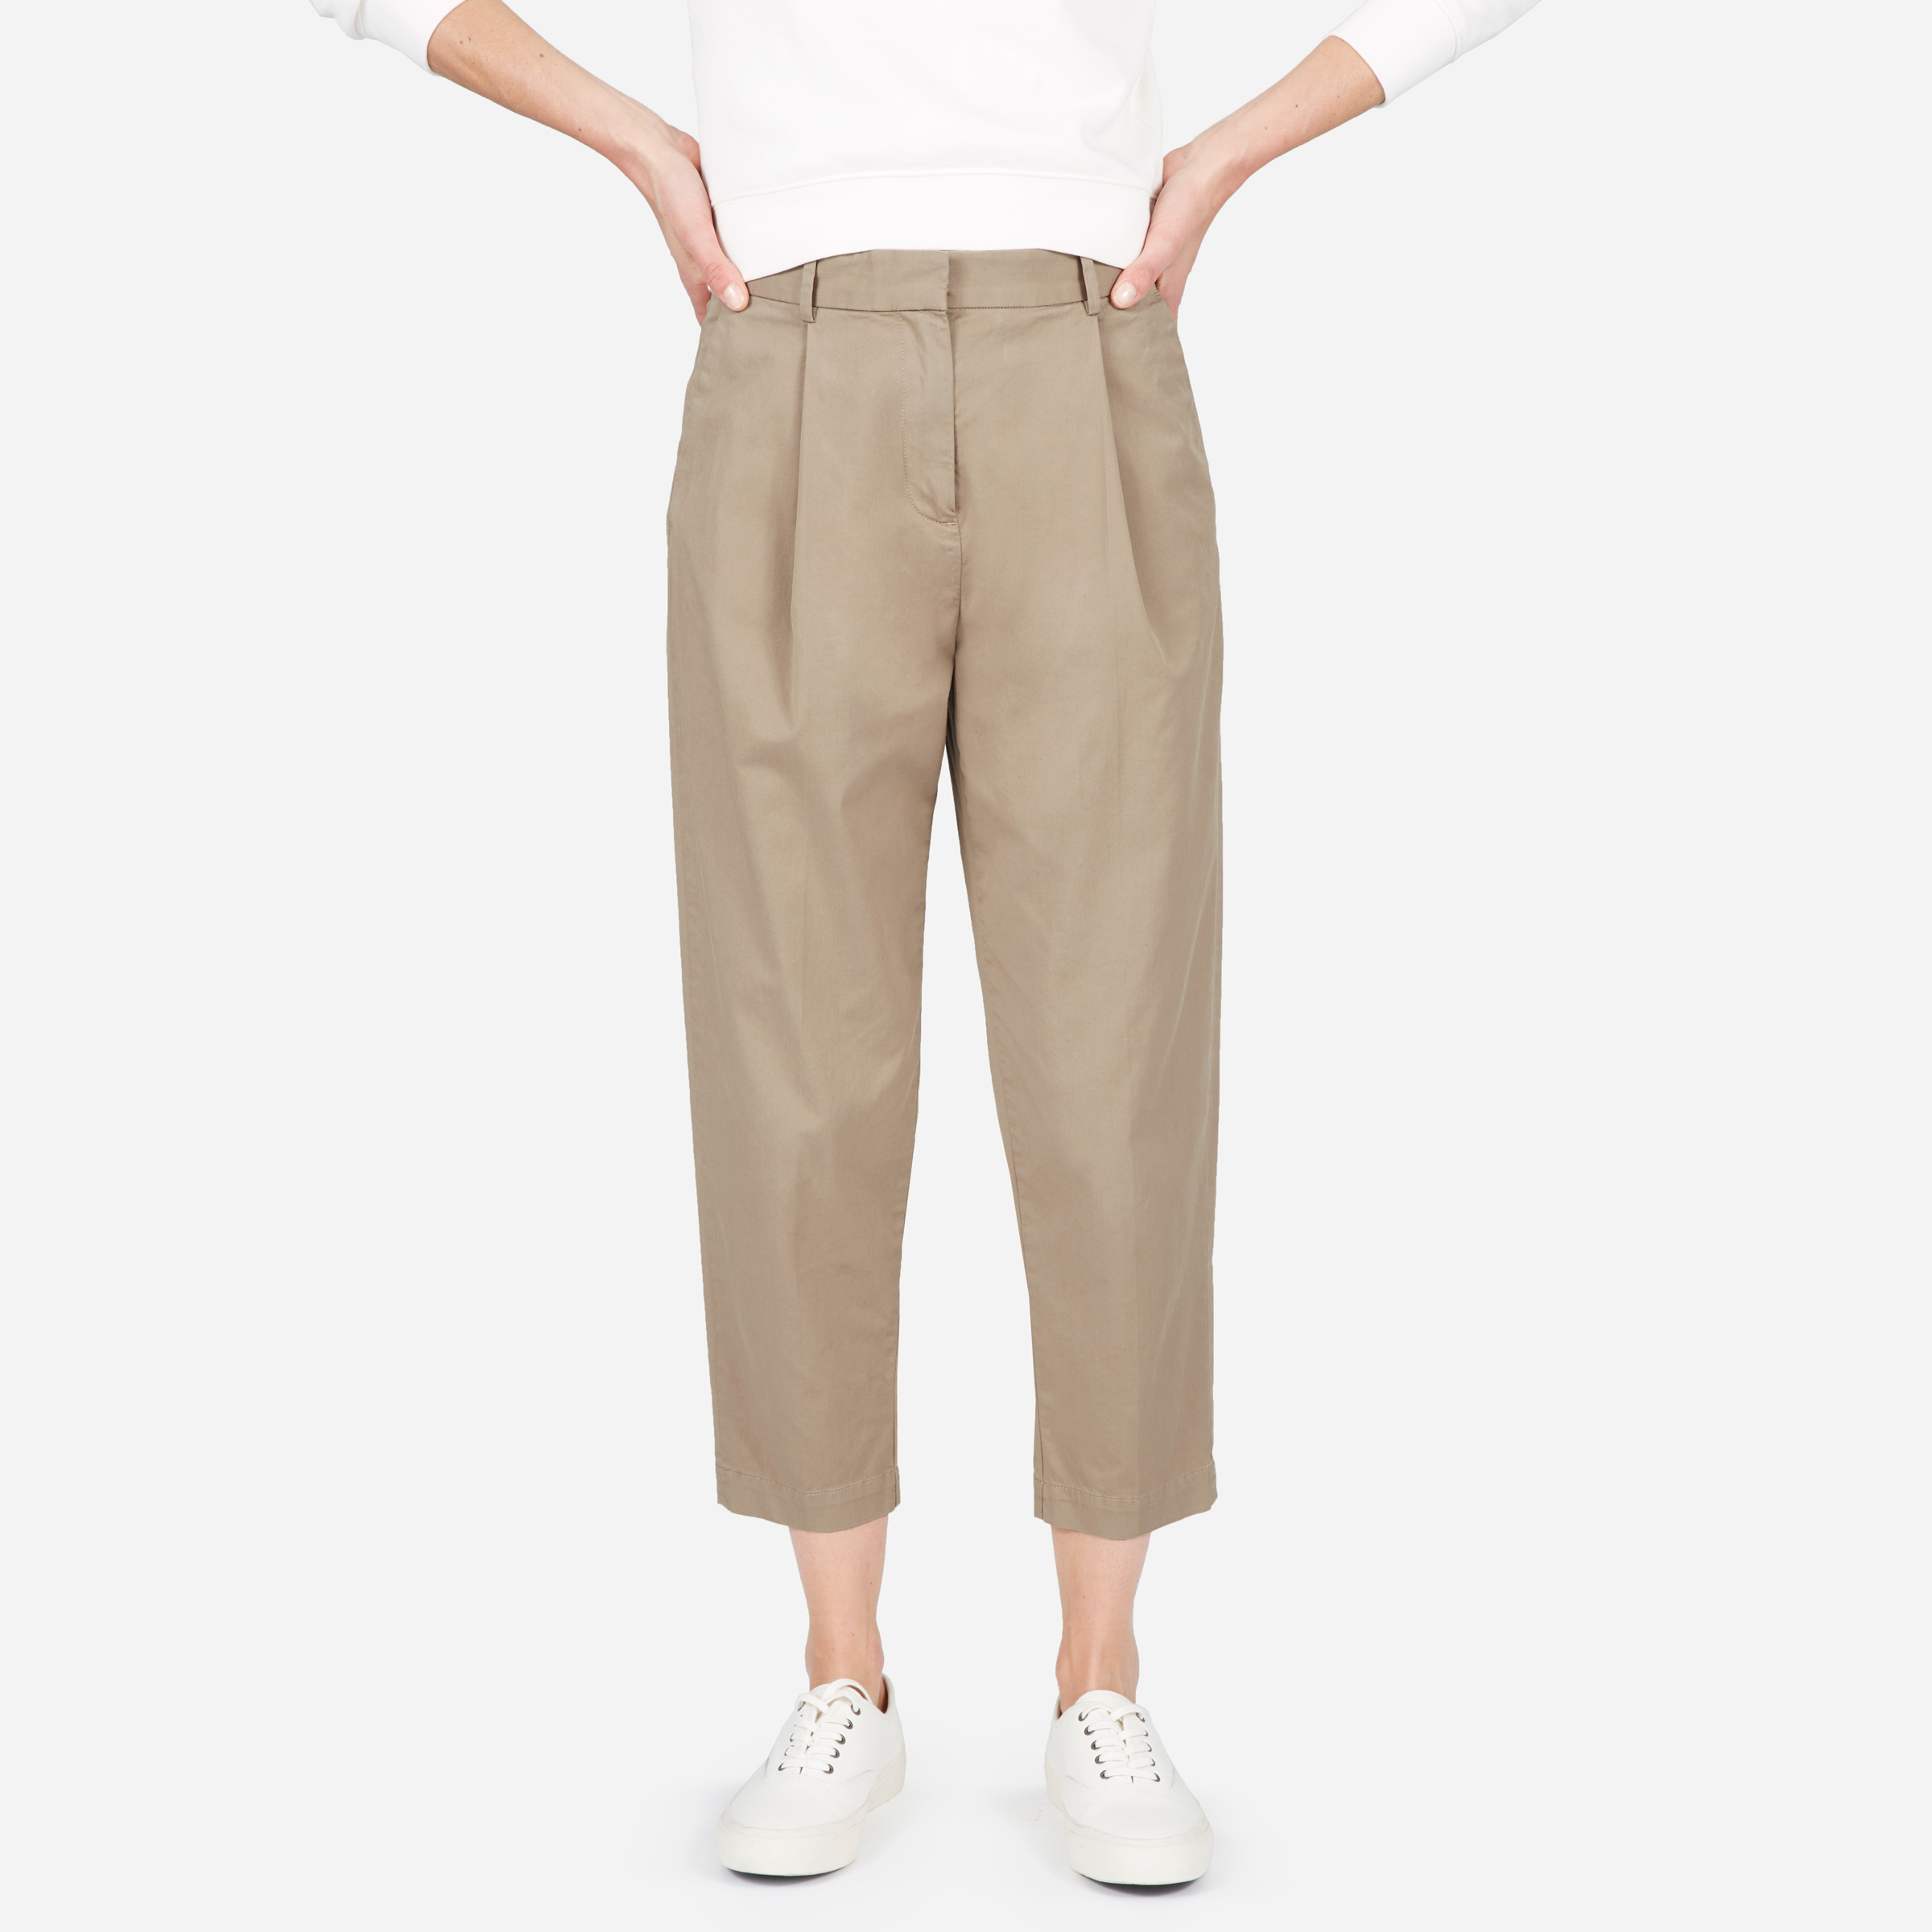 The Slouchy Chino Pant - Khaki